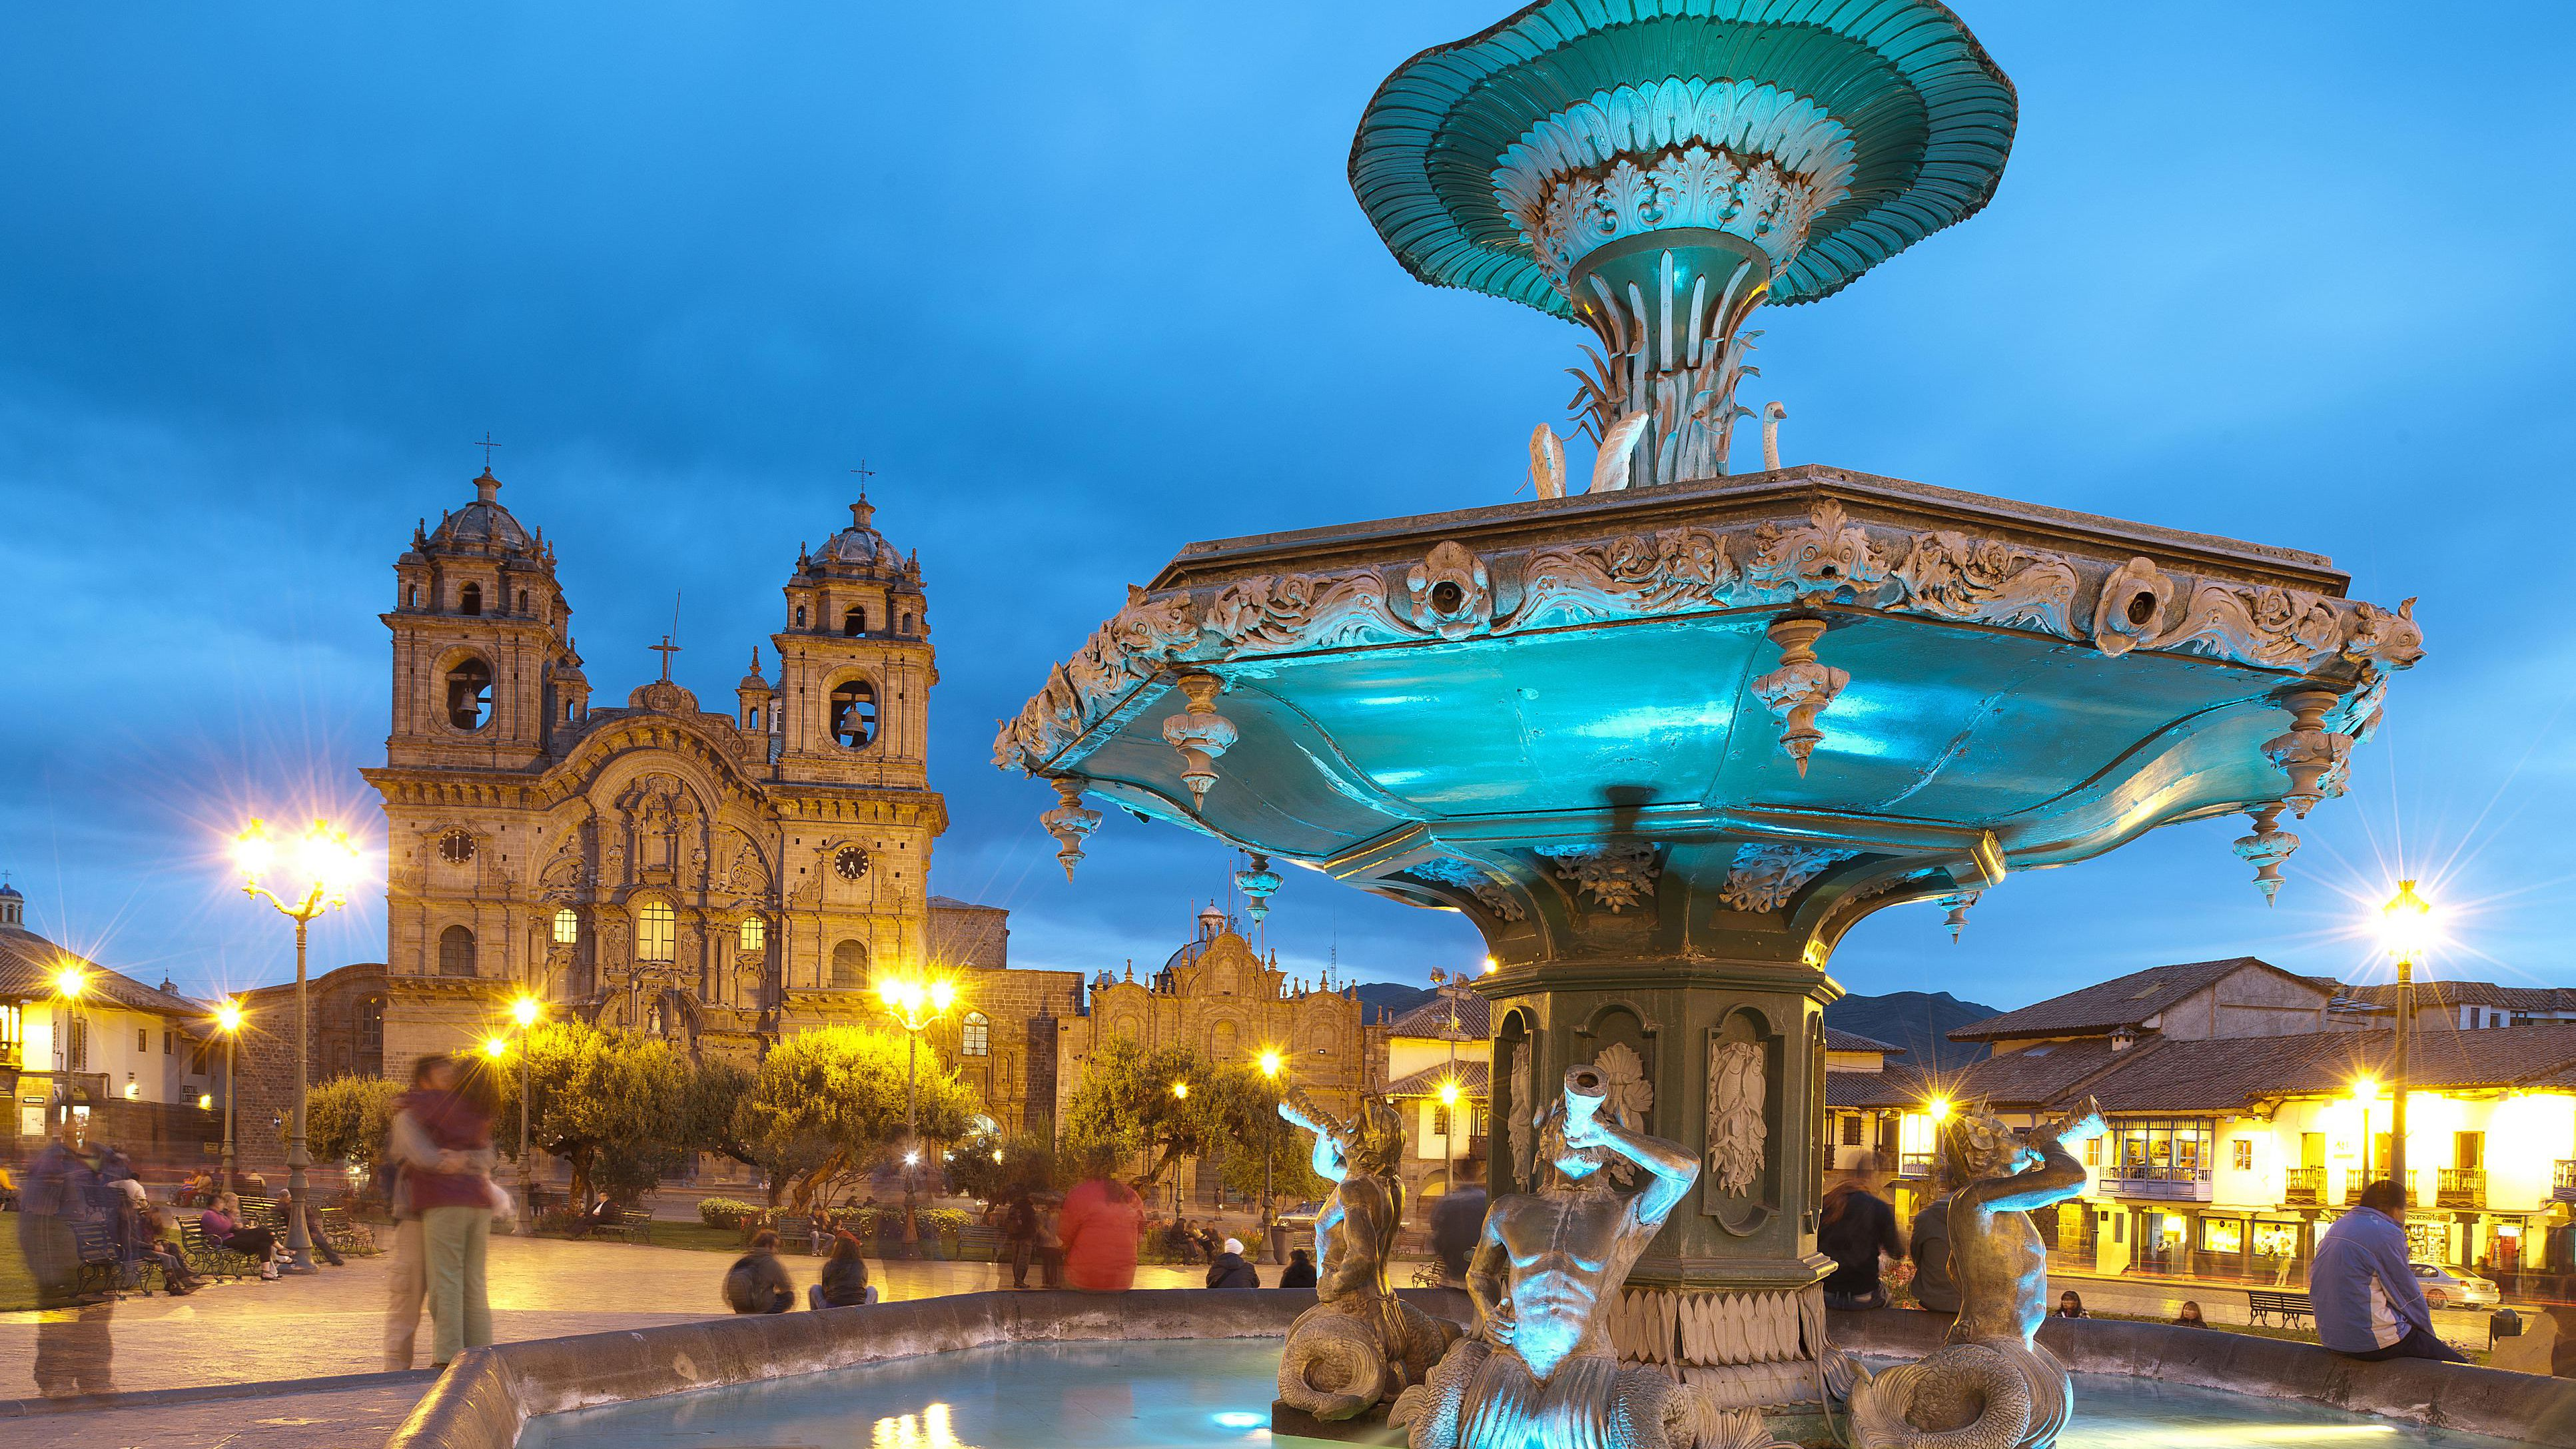 Travel Inspiration: A Visit to Cusco